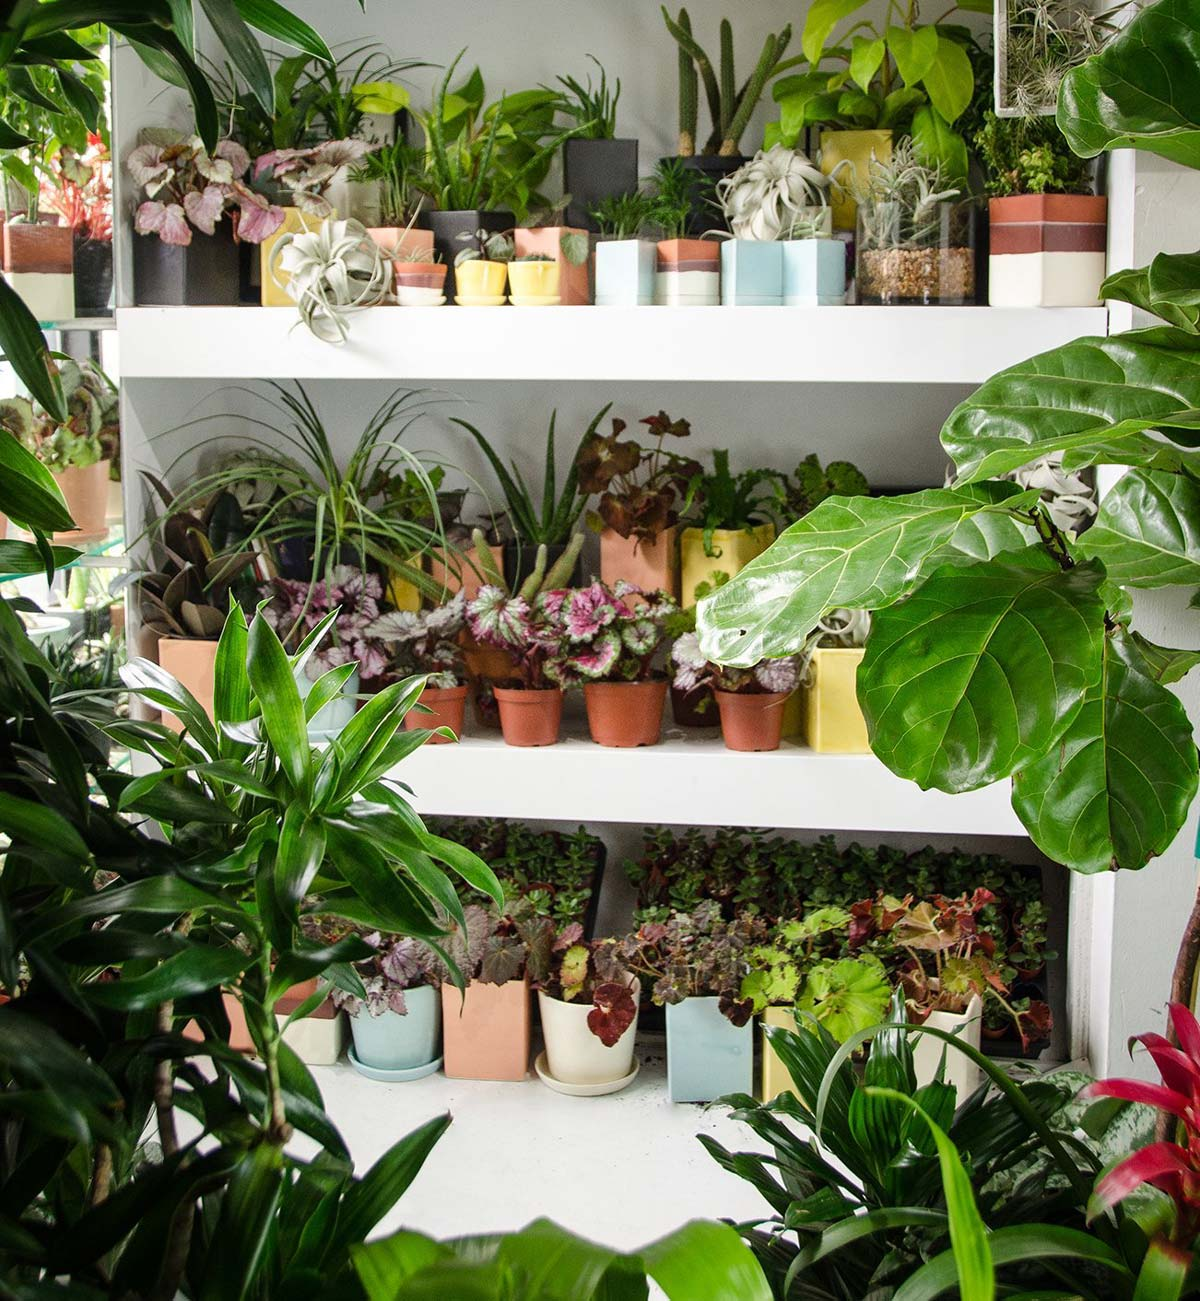 Plants on Shelf in a Retail Shop